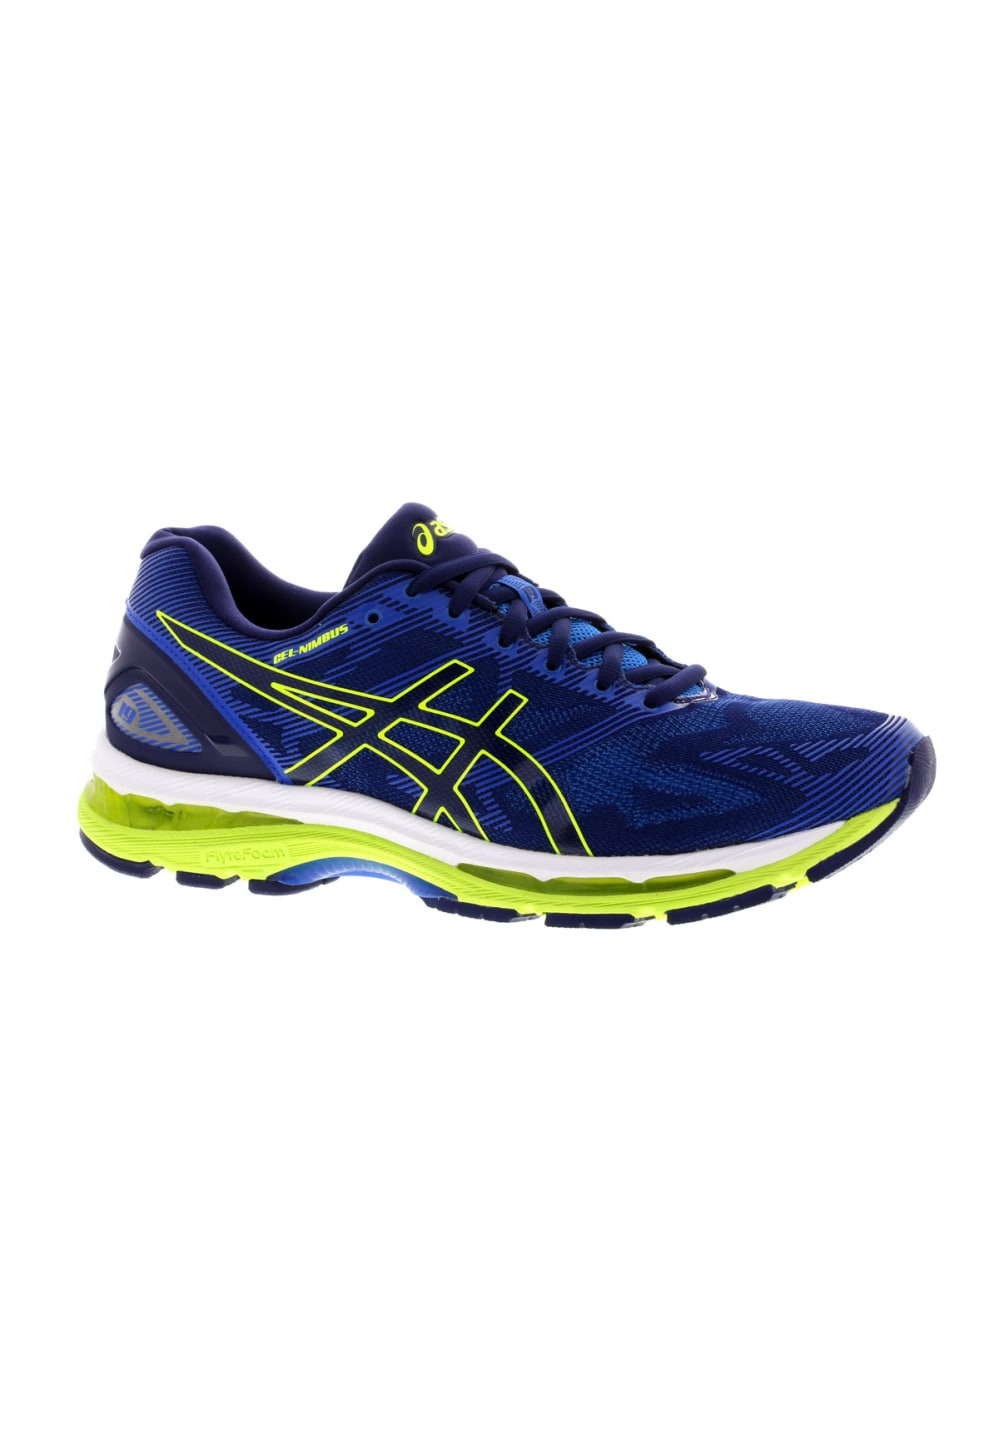 buy online 4a376 8a912 ASICS GEL-Nimbus 19 - Running shoes for Men - Blue